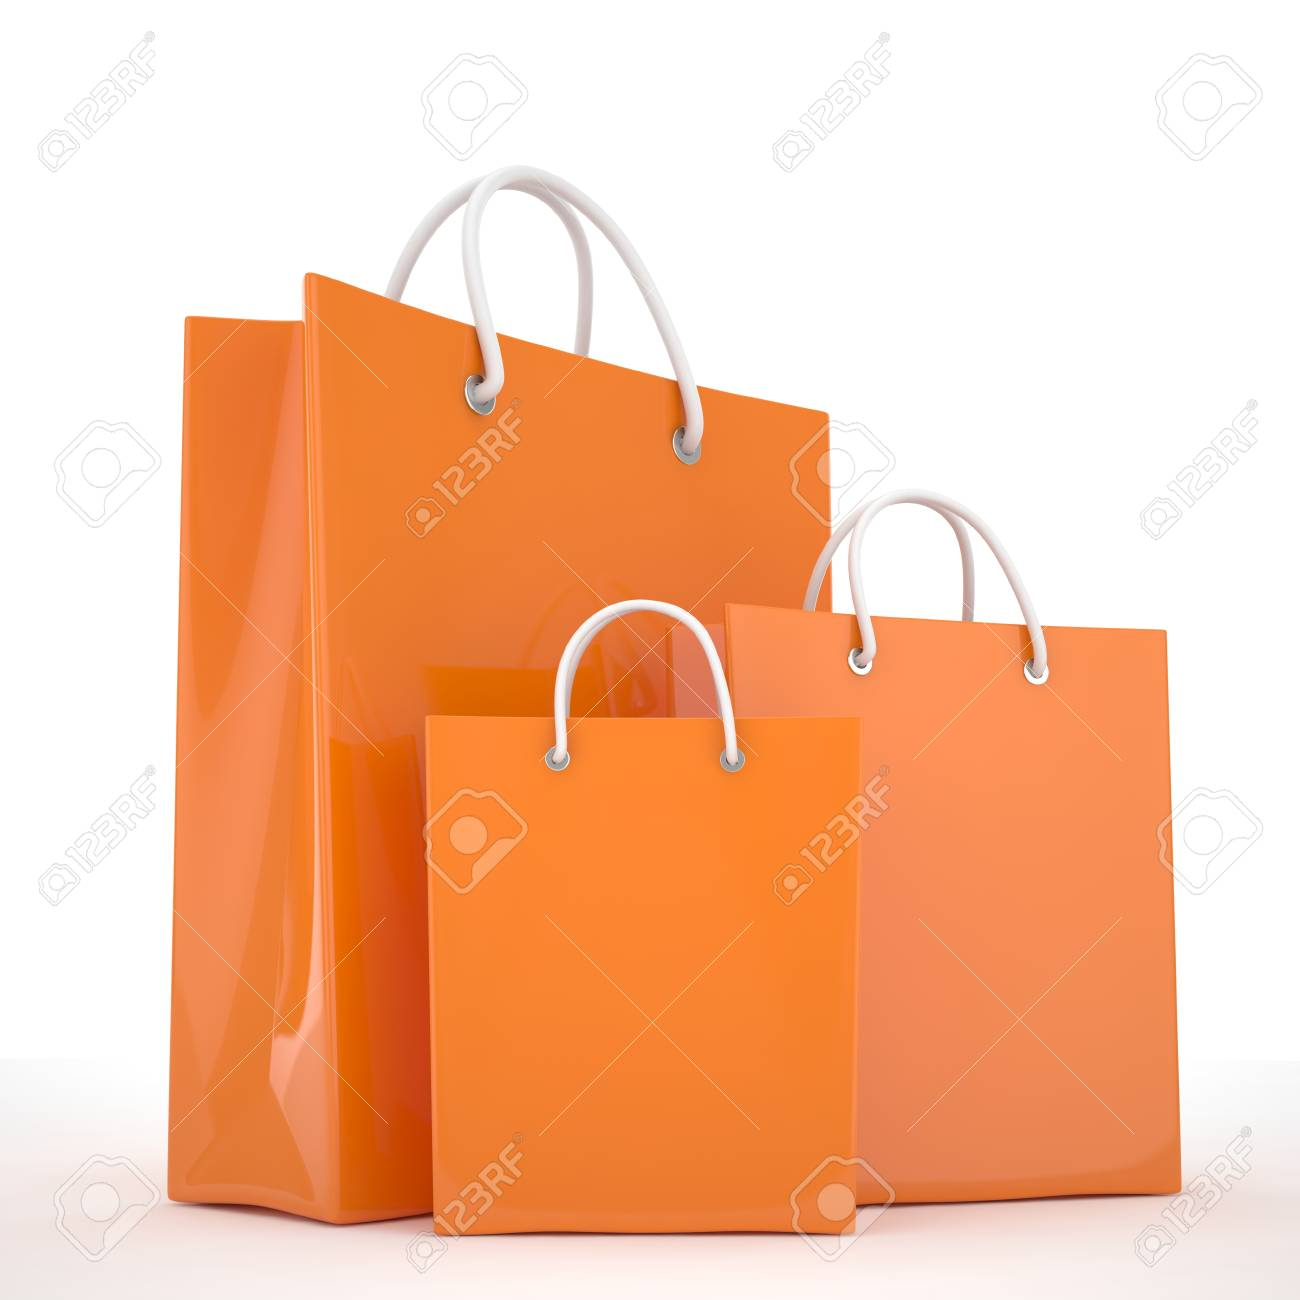 Paper Shopping Bags isolated on white background - 50355212